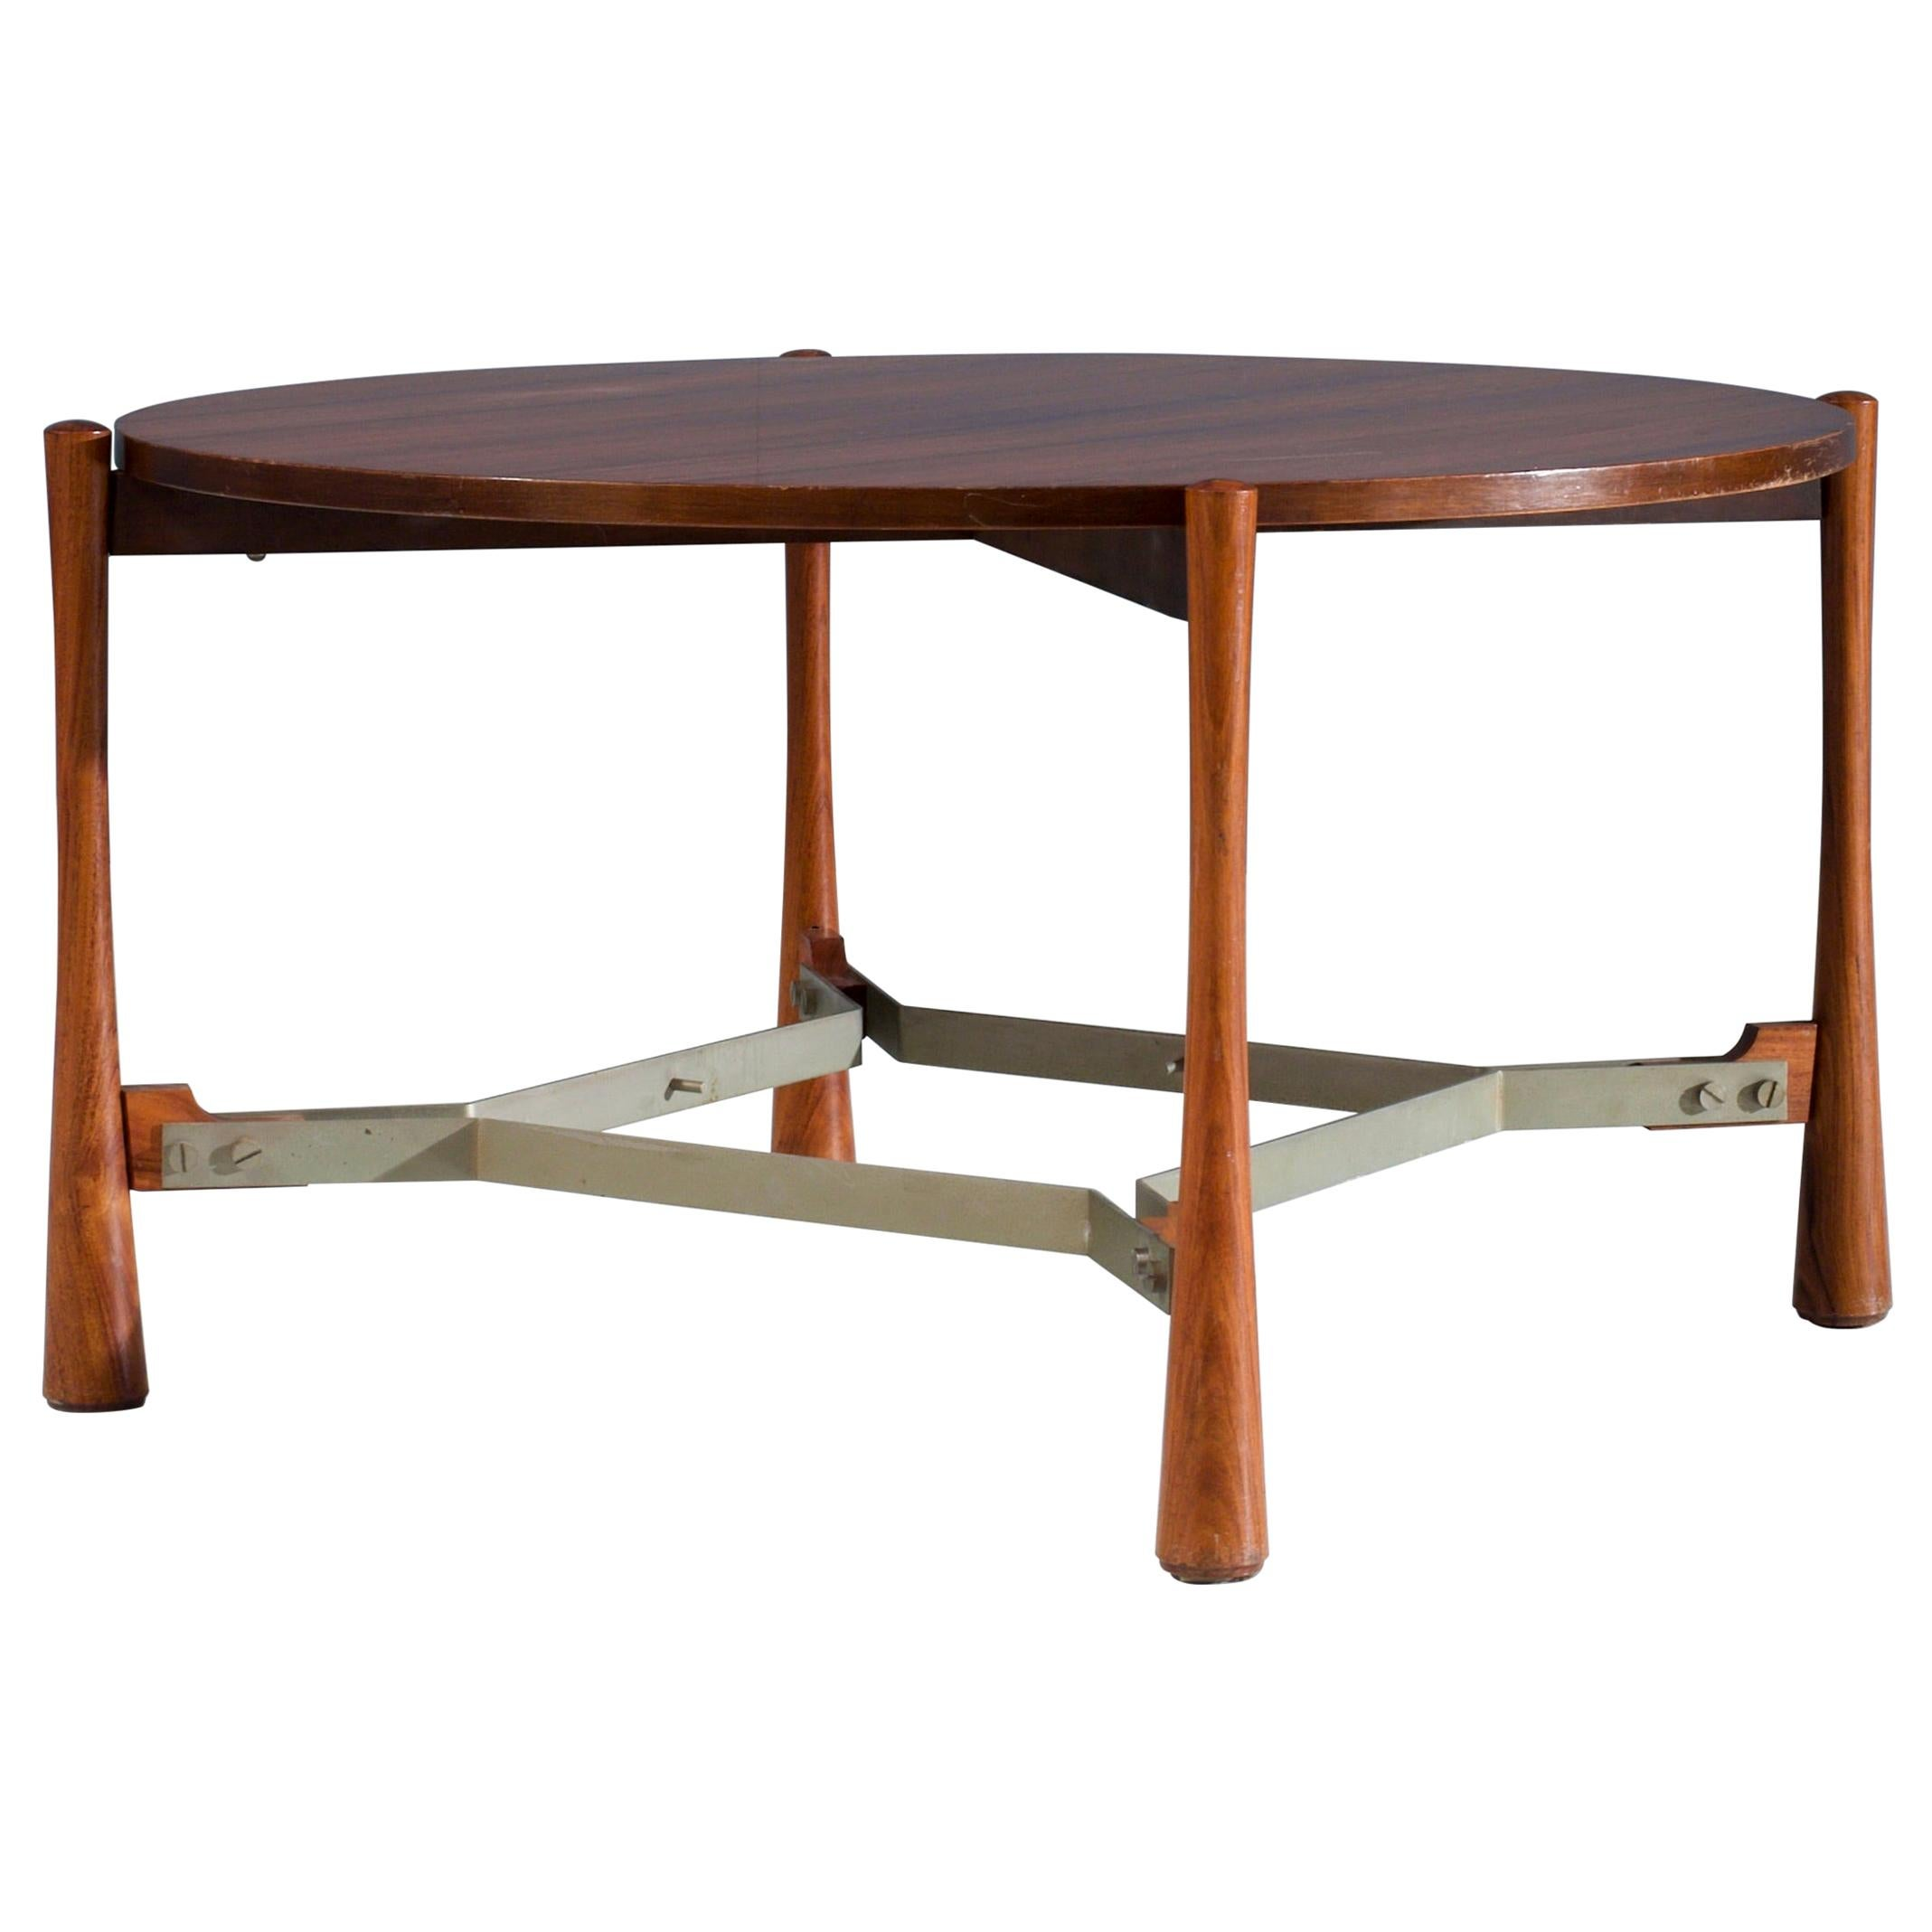 Rosewood Coffee Table in Wood and Metal, Italy, 1970s